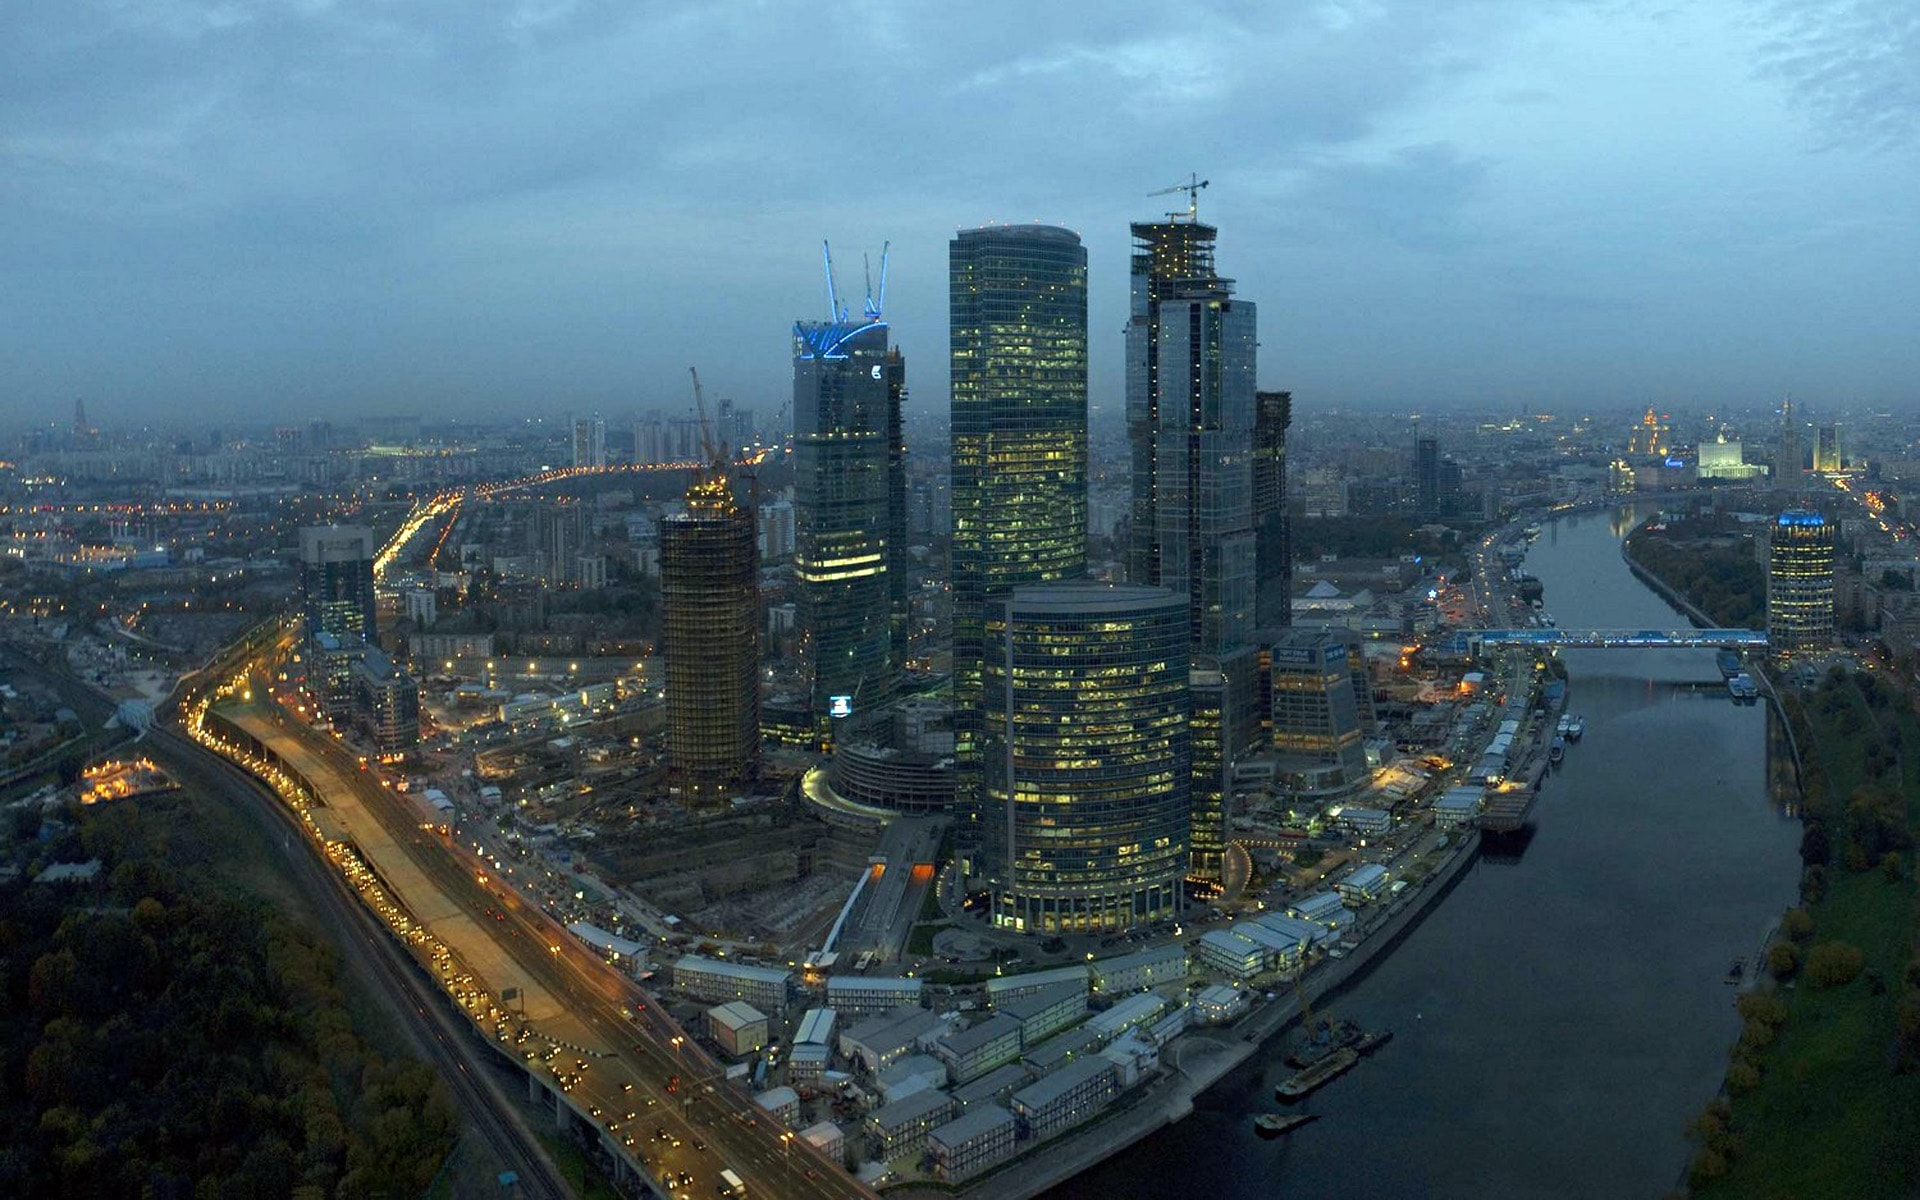 moscow wallpapers high resolution - photo #47